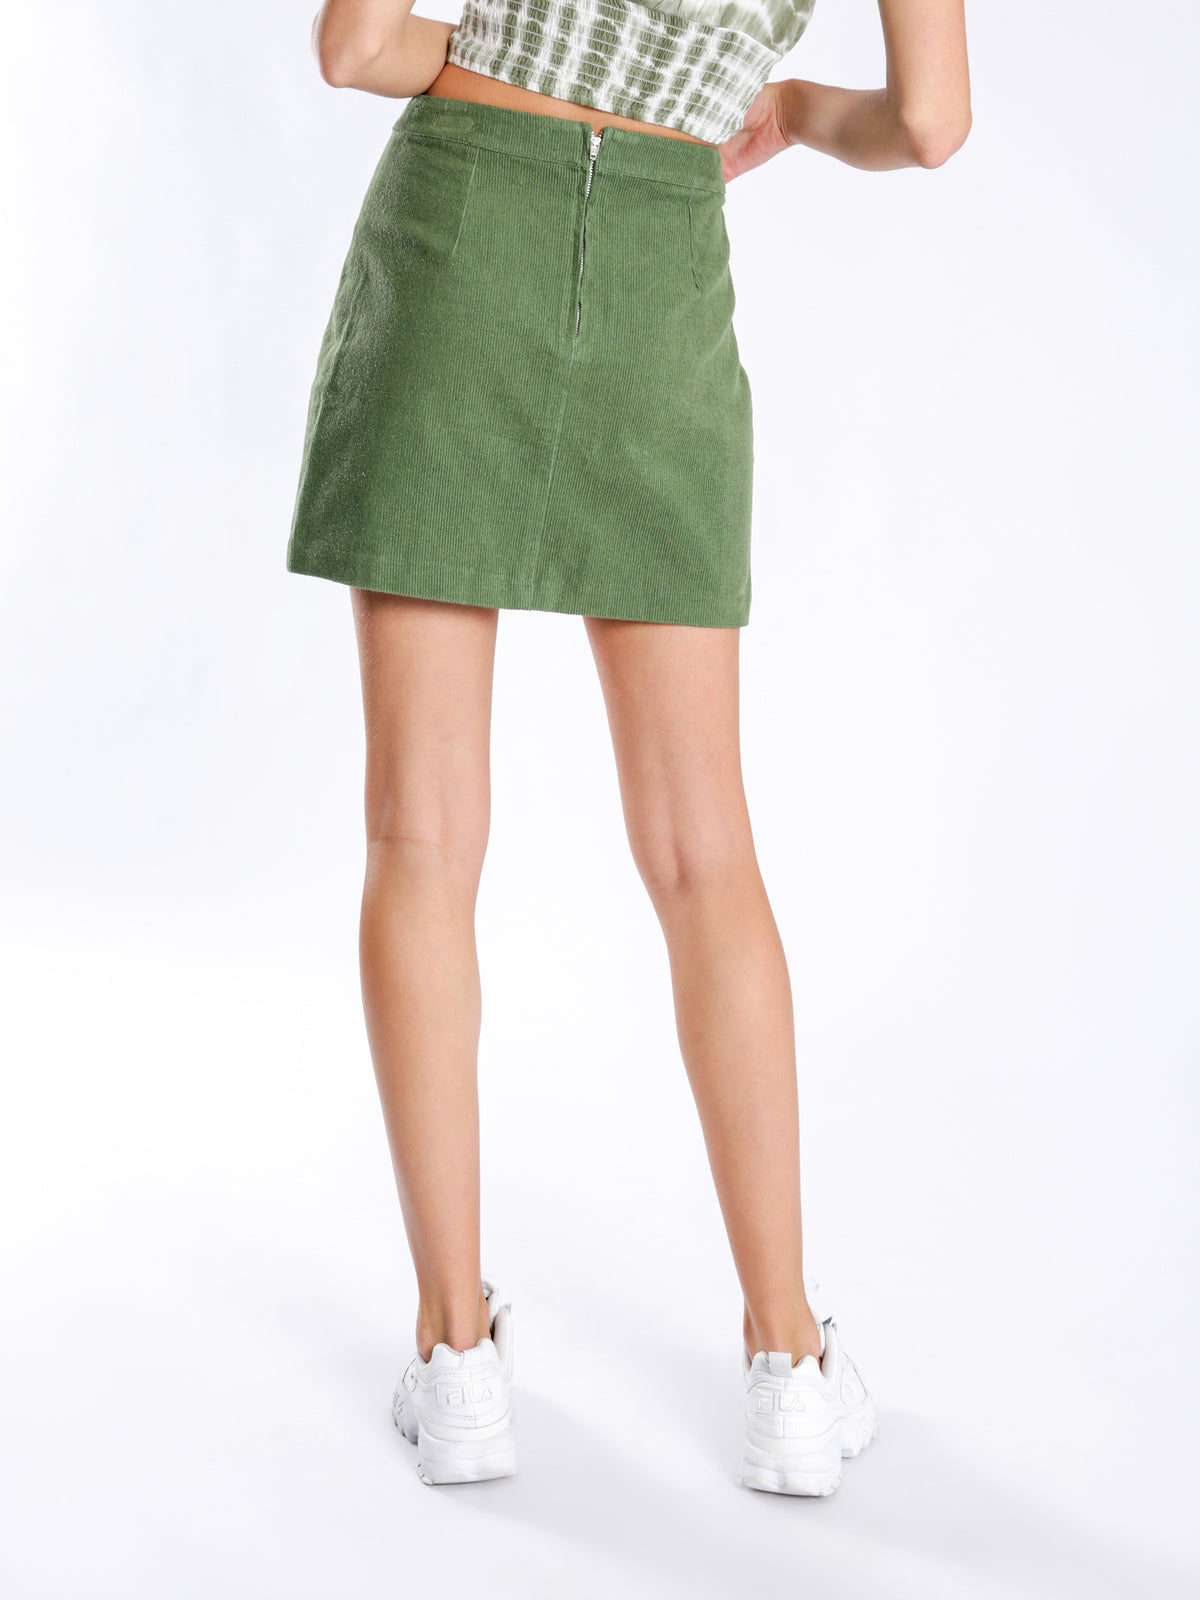 Gemini Mini Skirt in Green